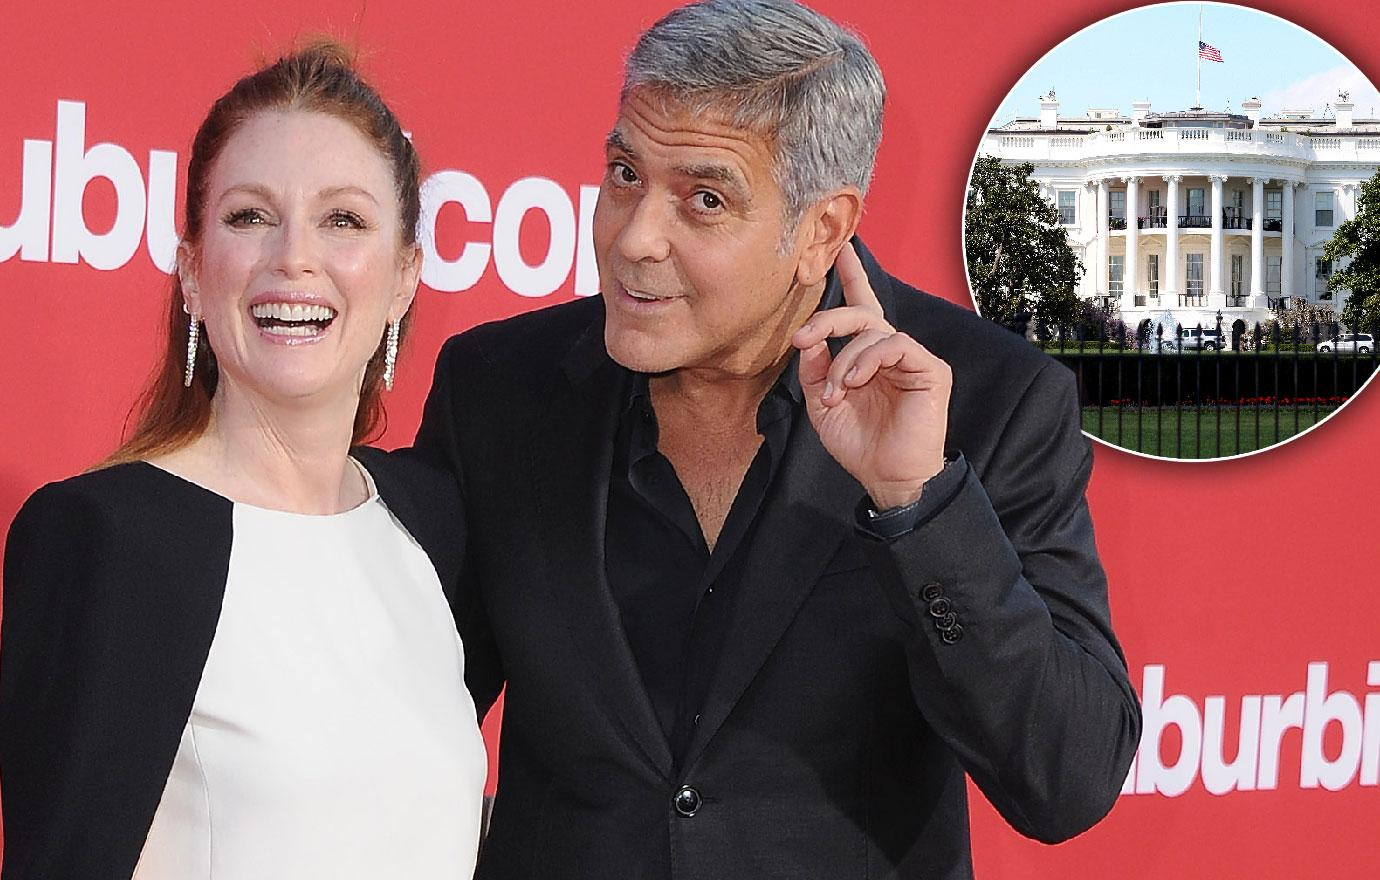 Julianne Moore Does Not Want George Clooney To Be President